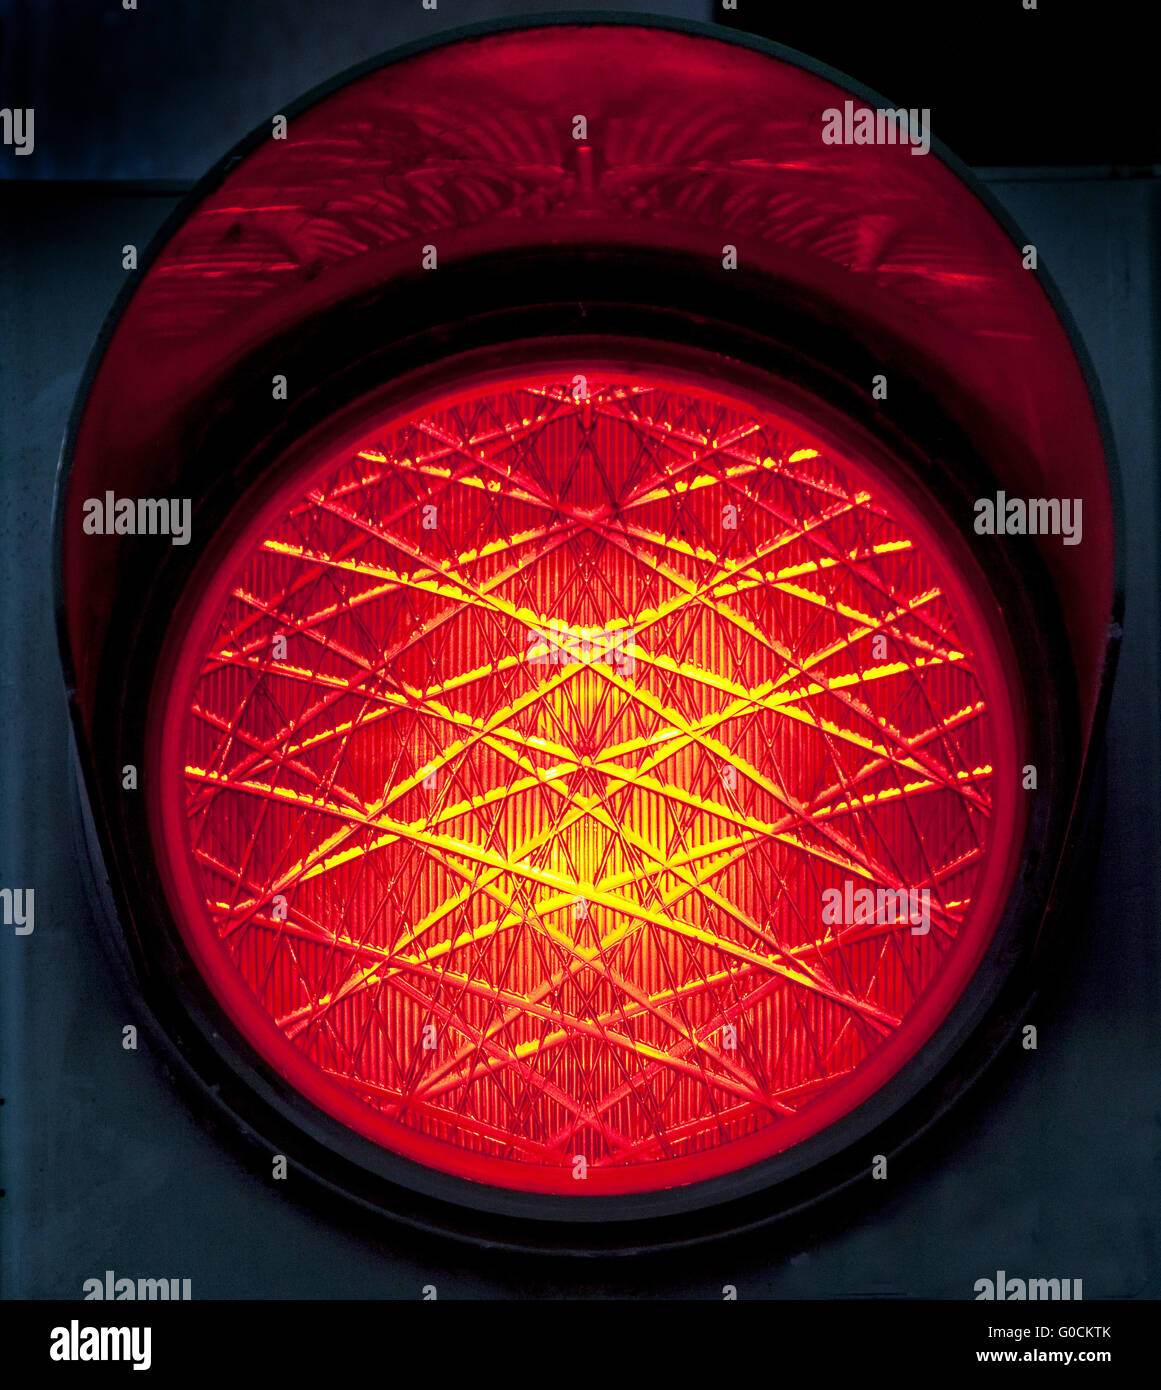 Red traffic light, Germany - Stock Image